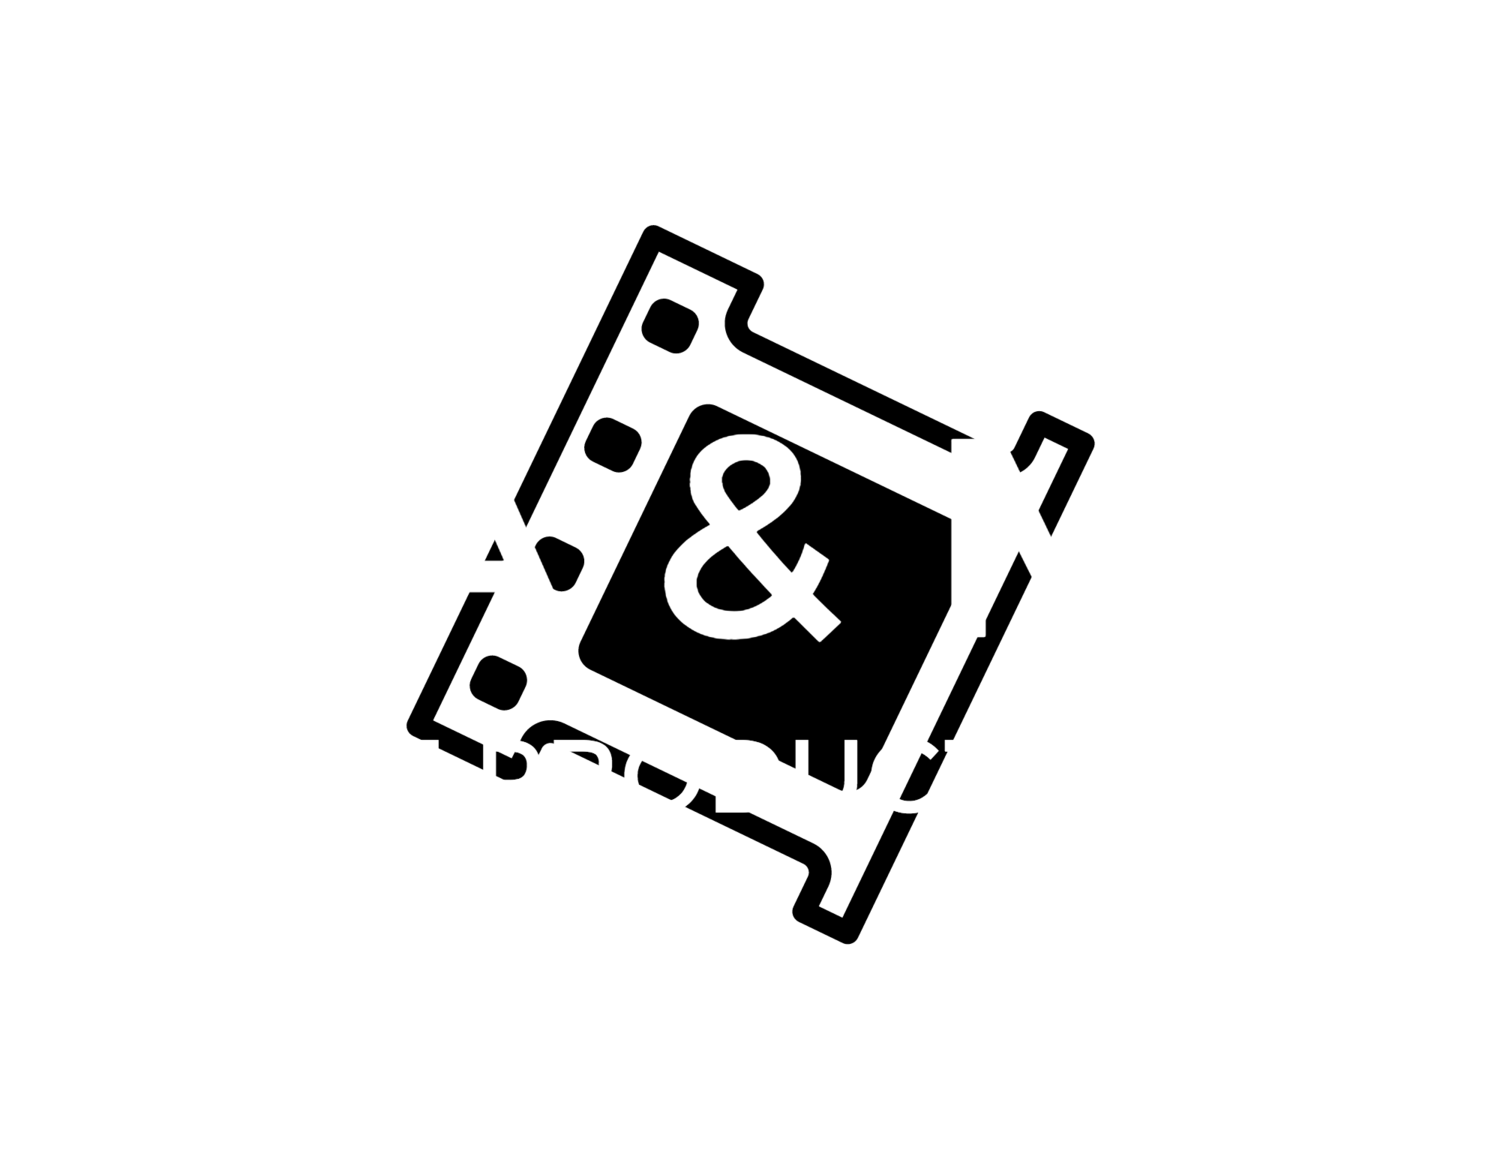 A & M Life Productions